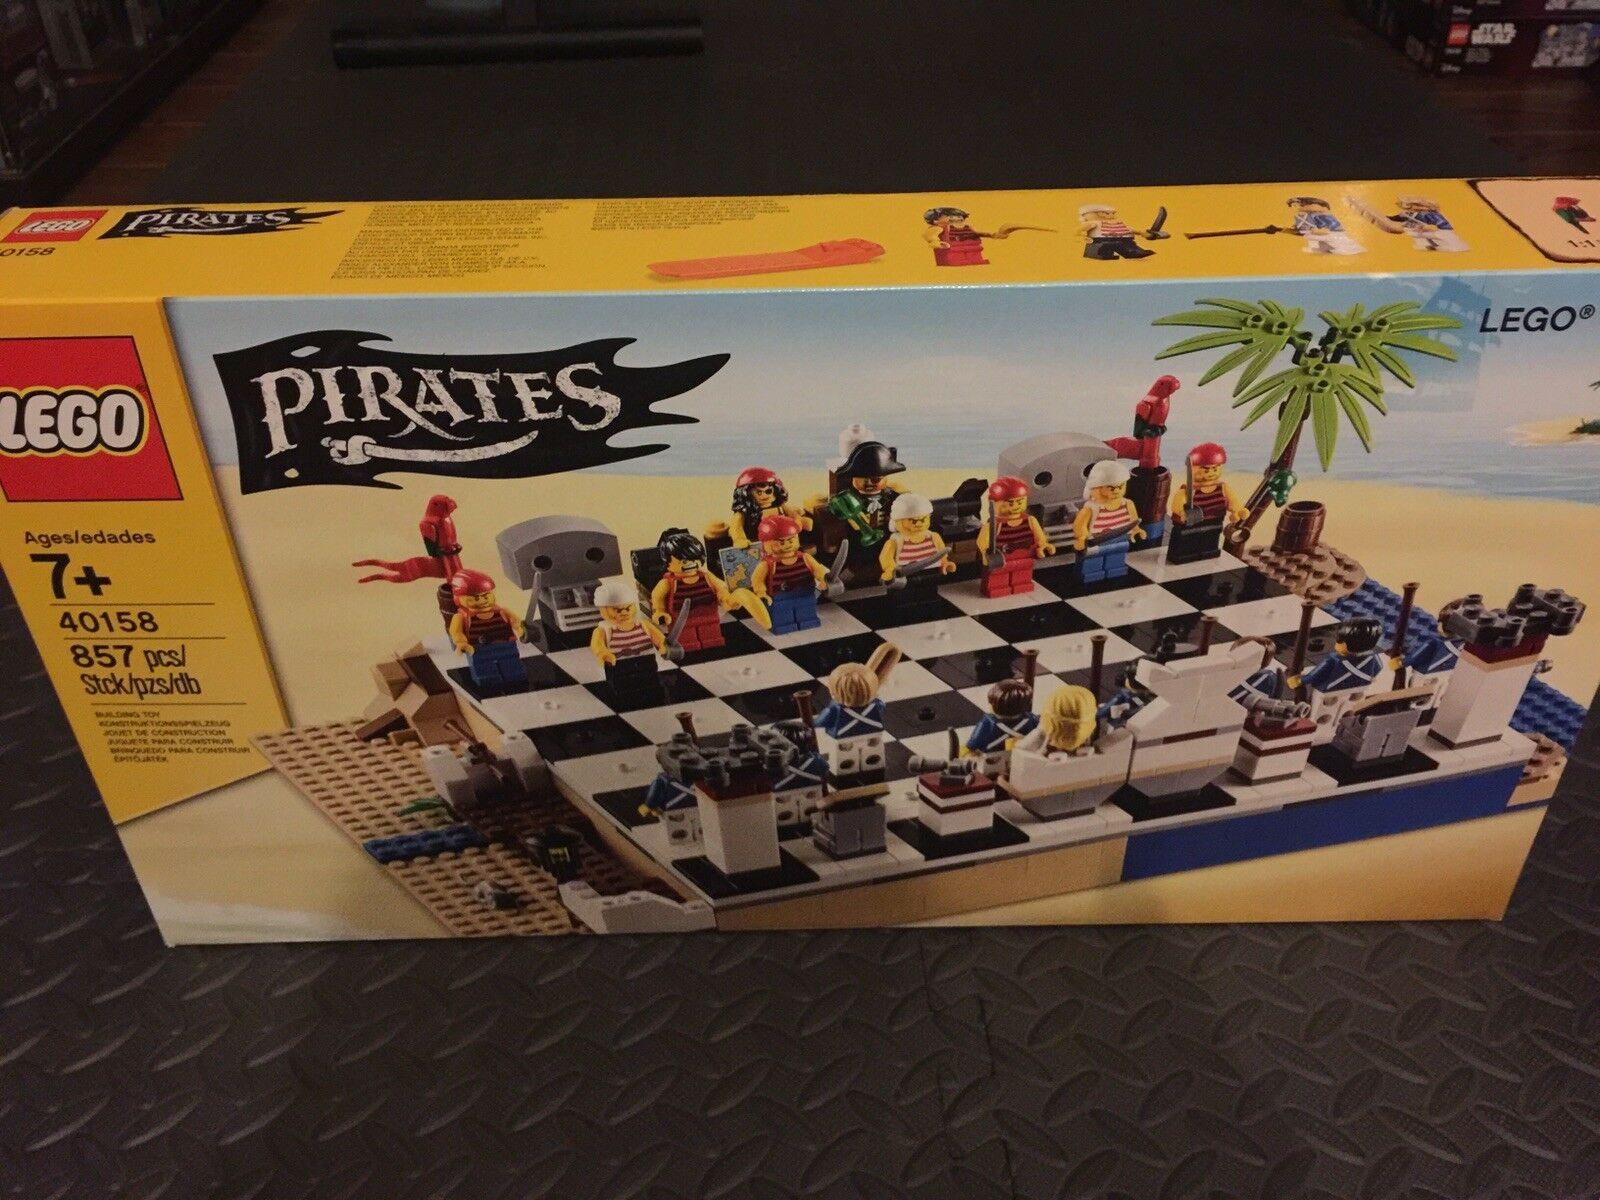 Lego 40158 40158 40158 Pirates Chess - Brand New Factory Sealed ffe423